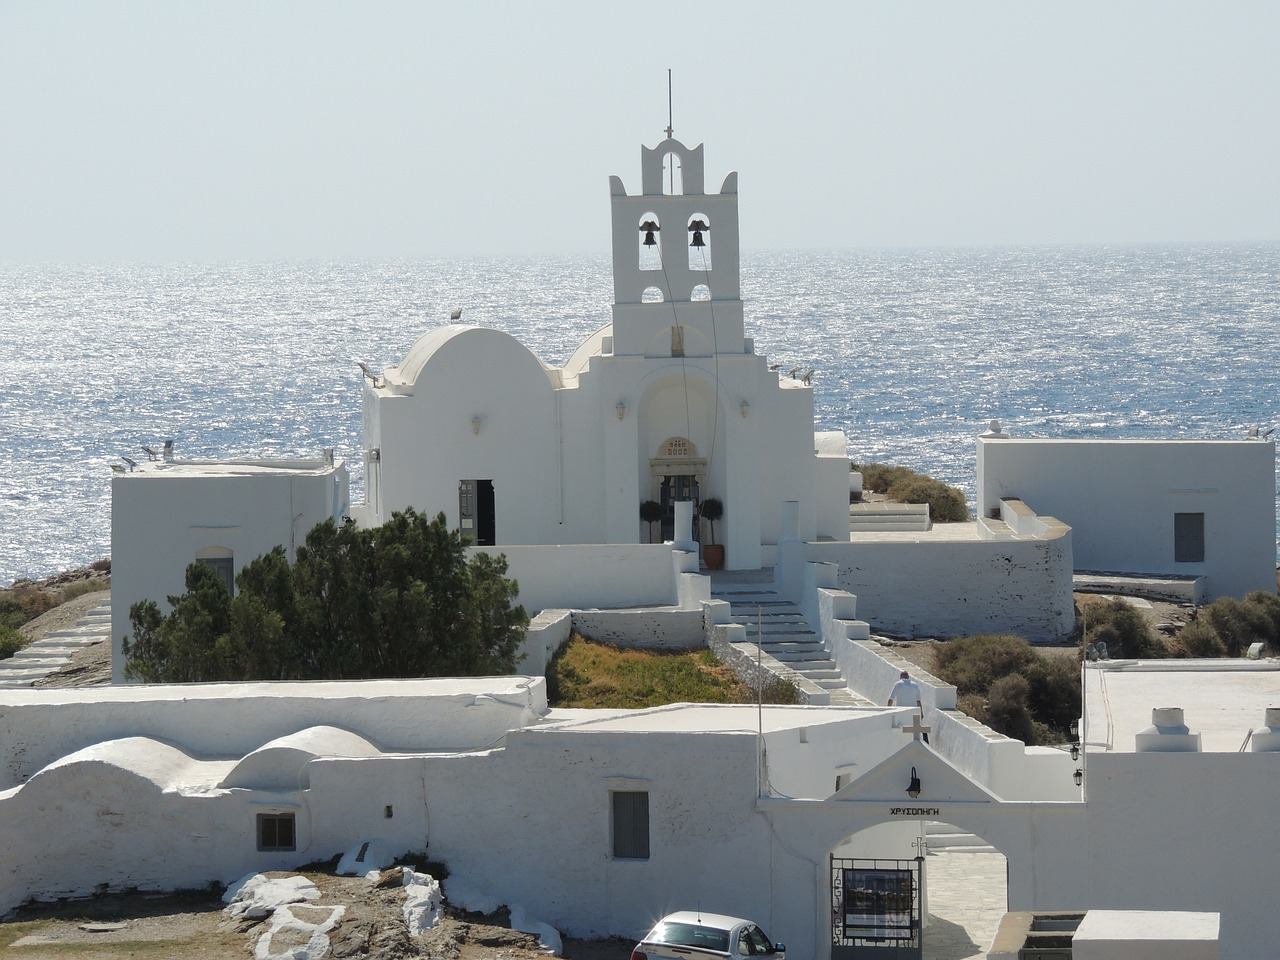 The Chrisopigi Monastery on Sifnos